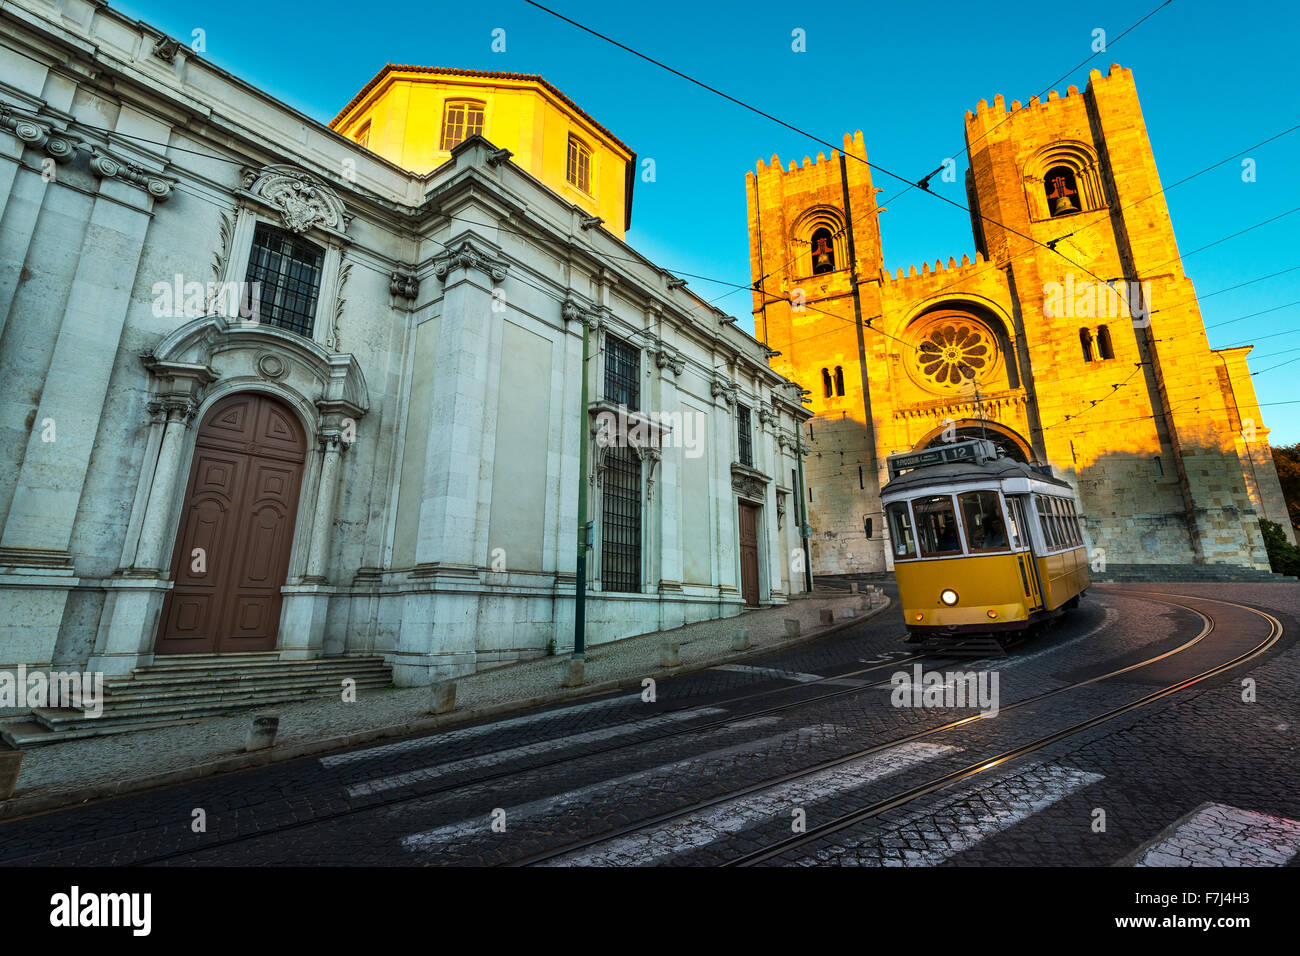 Tram in front of the Lisbon Cathedral at sunset - Stock Image